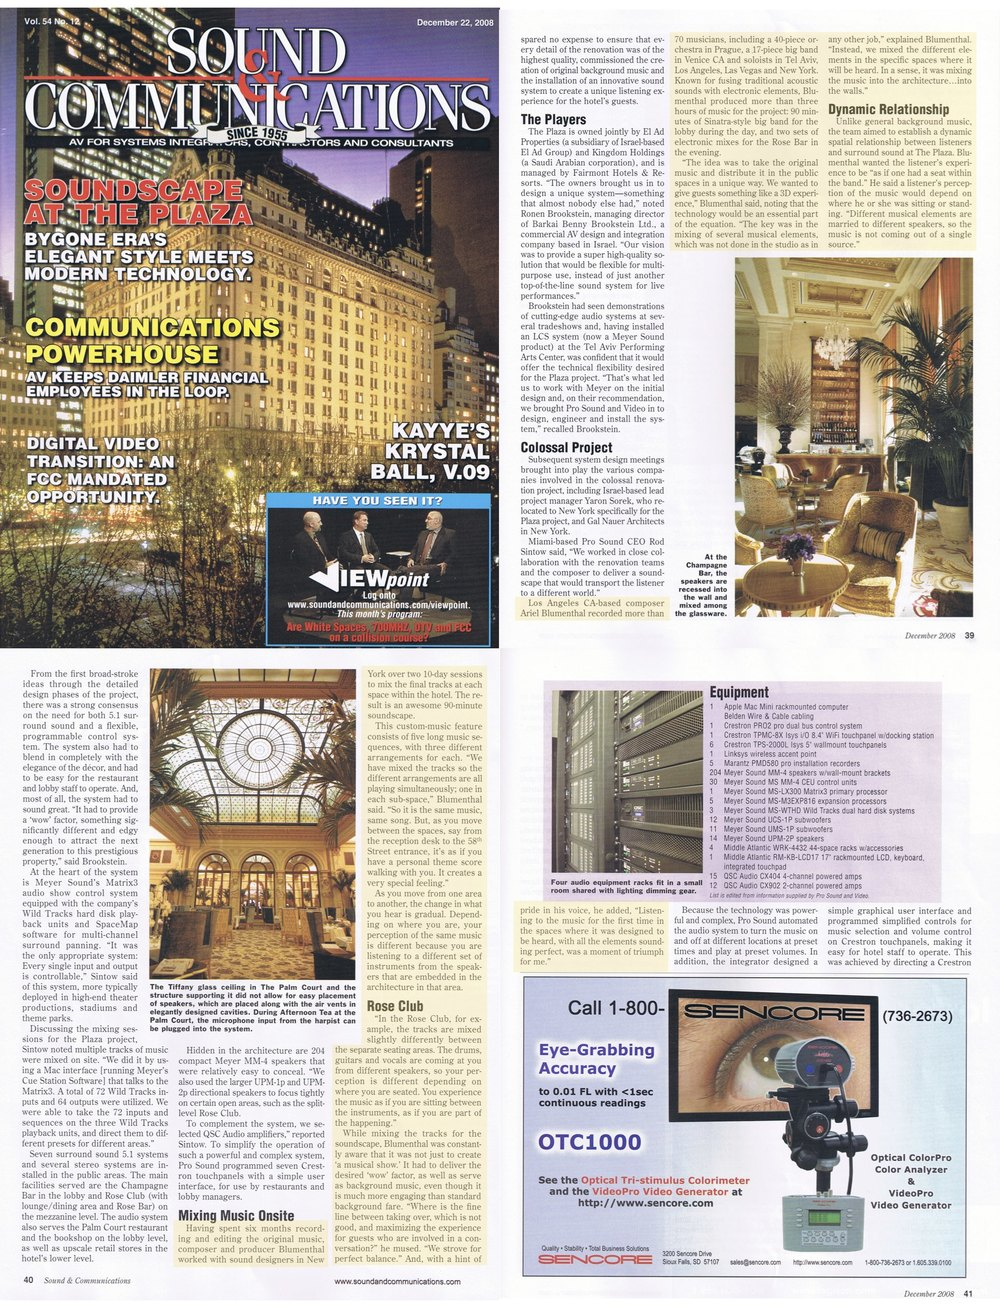 Composer Ariel Blumenthal Review: Plaza Hotel 3-dimensional music installations Sound and Communications